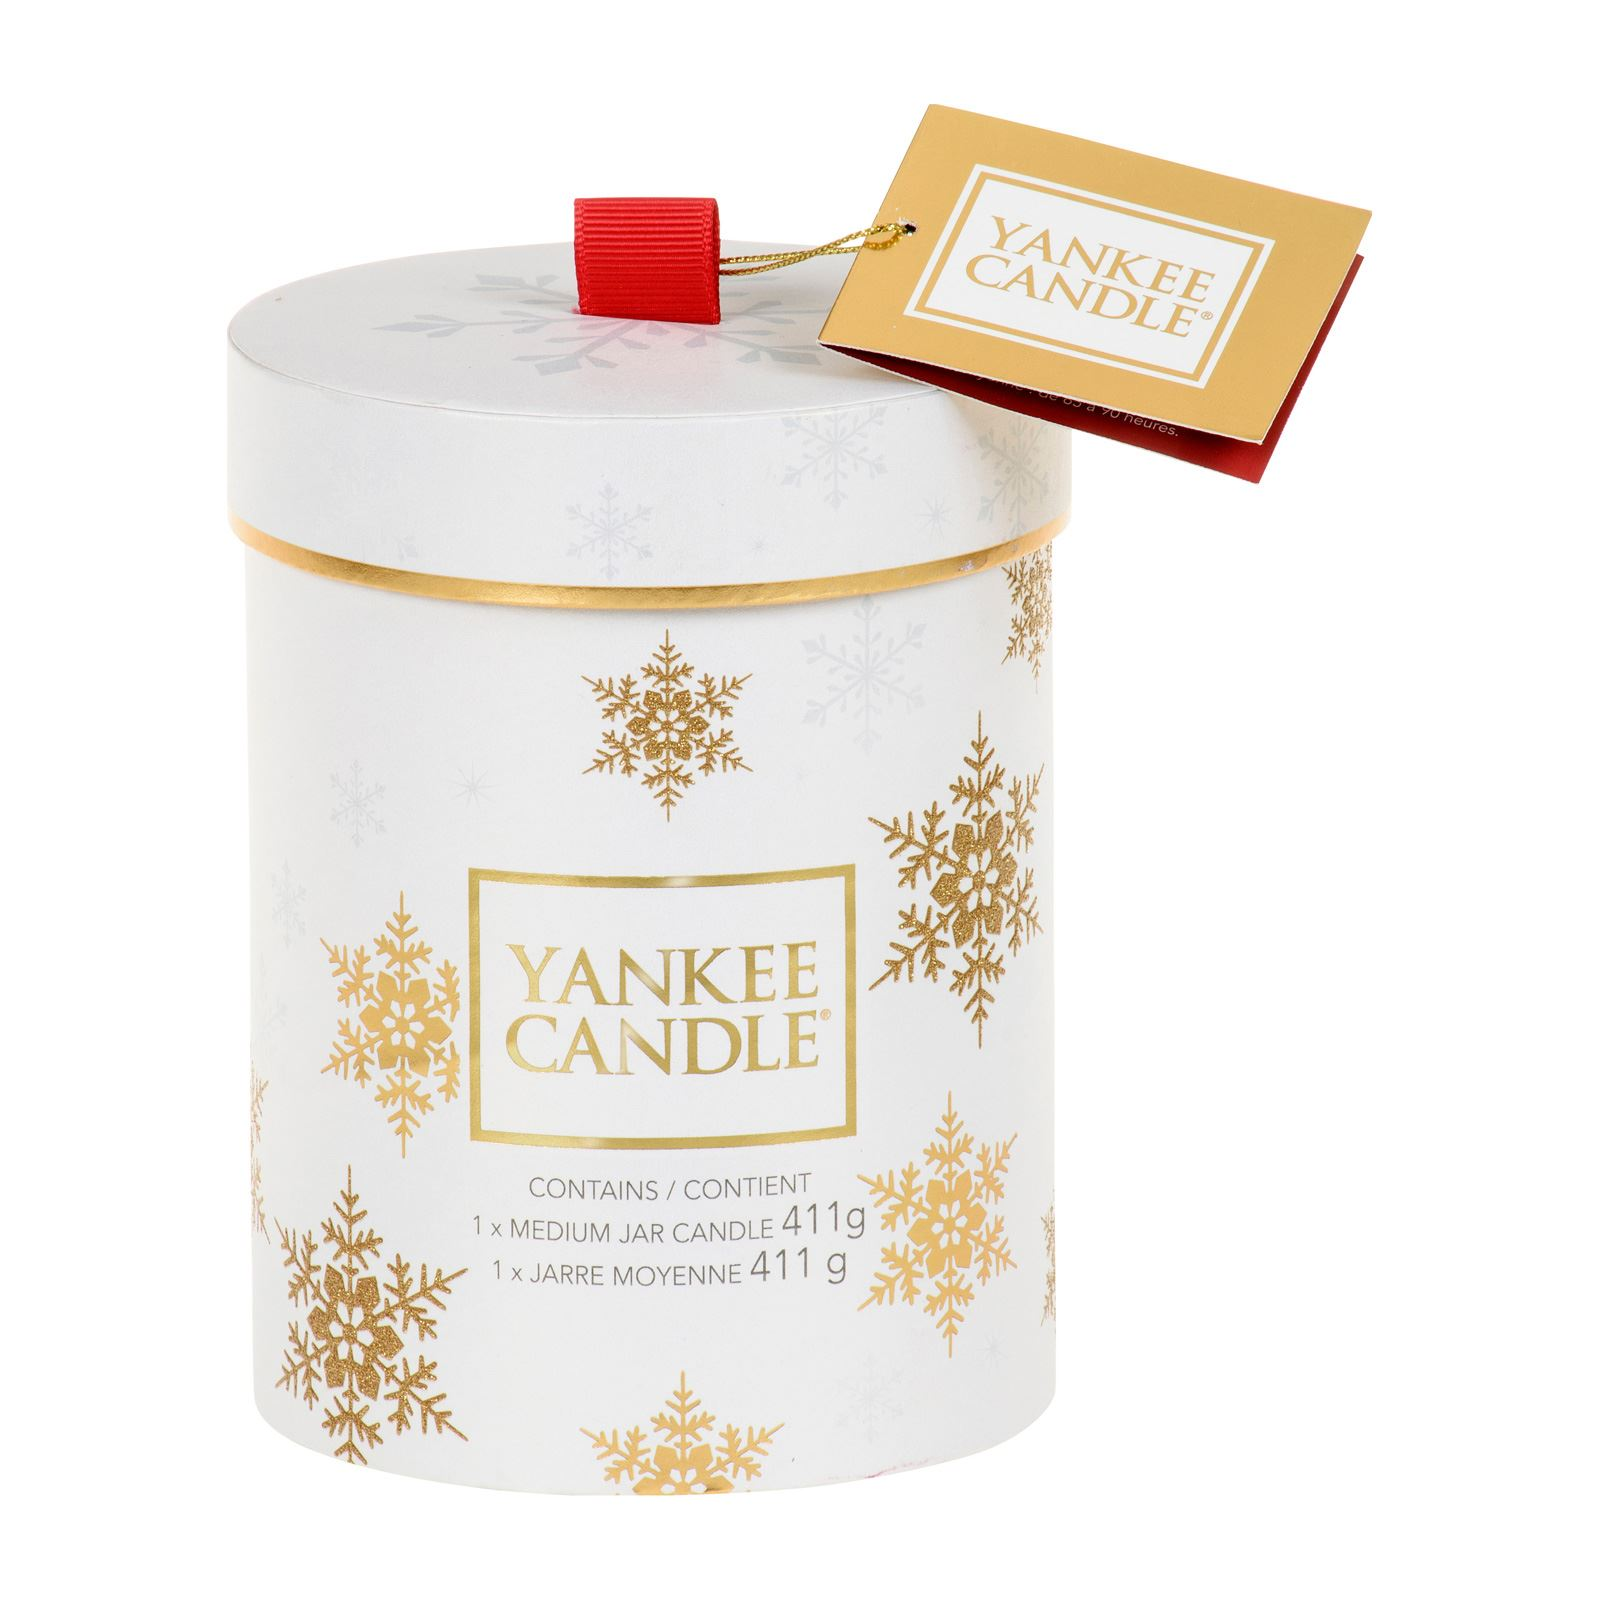 yankee candle coffret moyenne jarre bougie parfum e. Black Bedroom Furniture Sets. Home Design Ideas